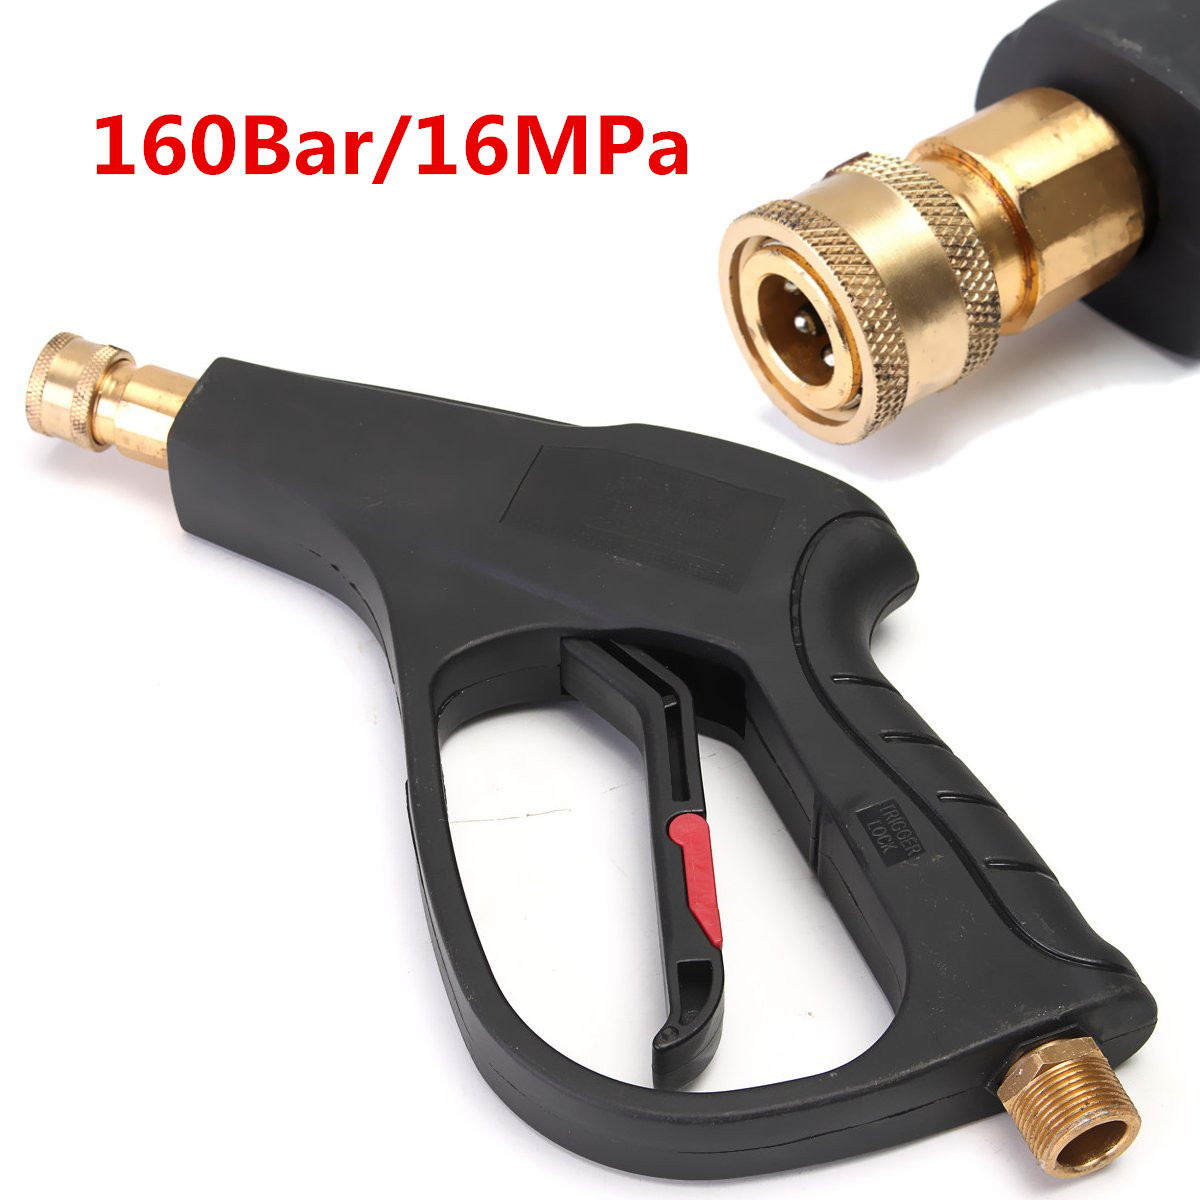 High pressure washer gun lance m pcs quick connect